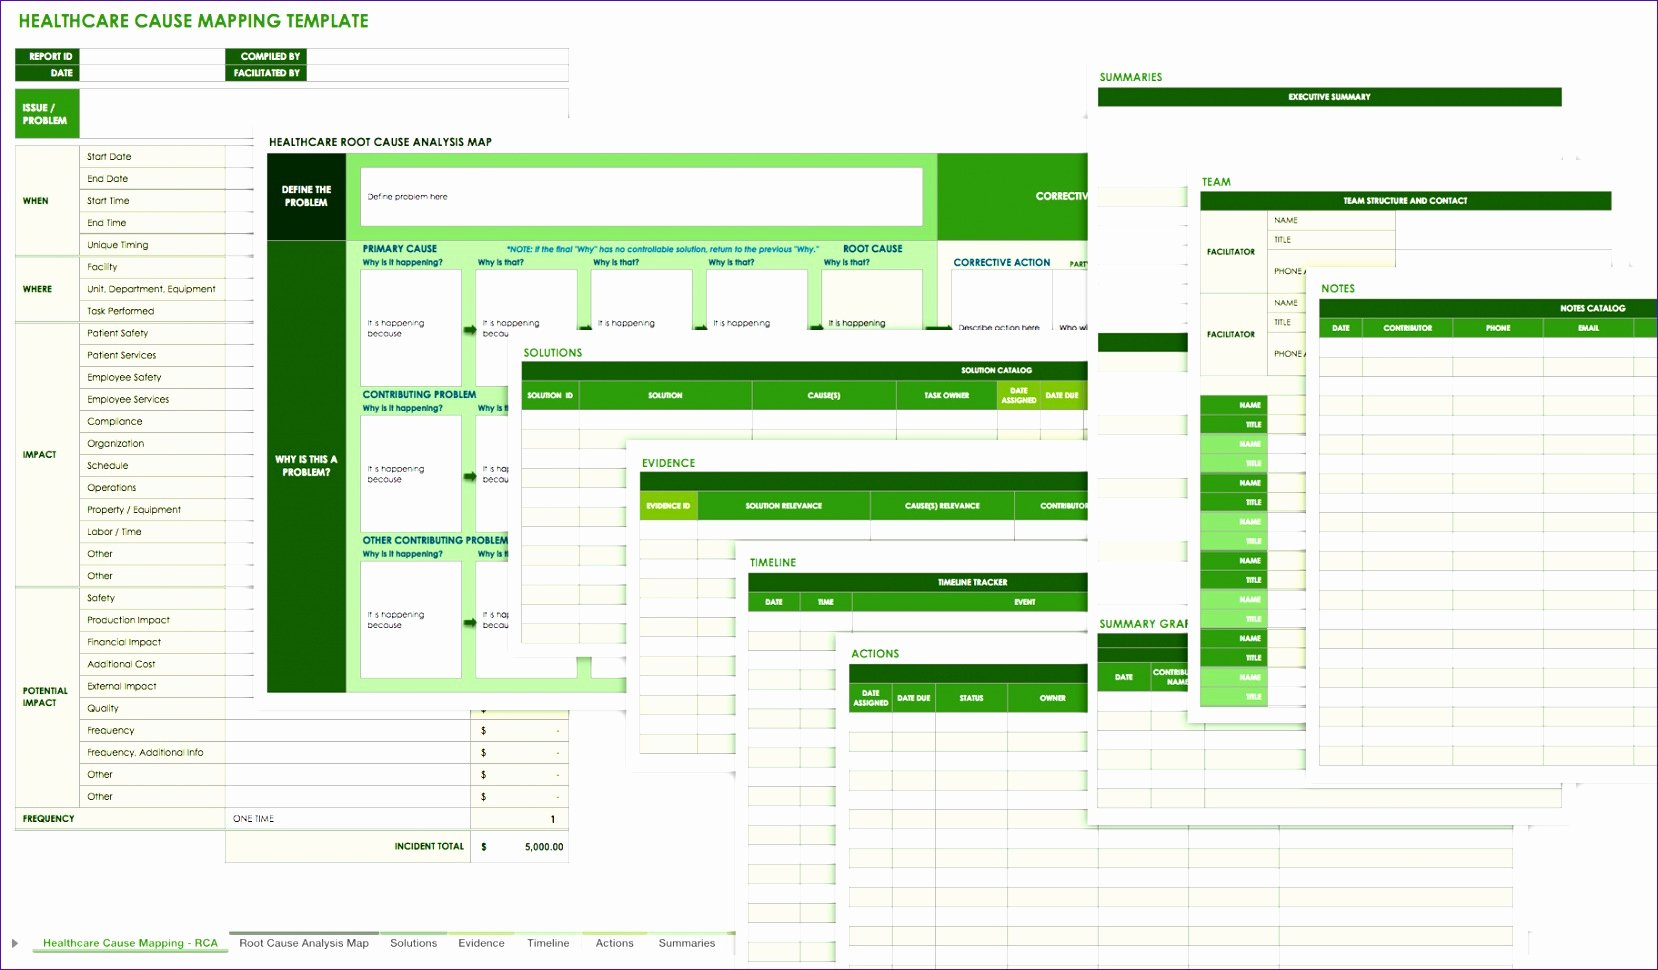 Training Matrix Template Excel Lovely 9 Free Training Matrix Template Excel Exceltemplates